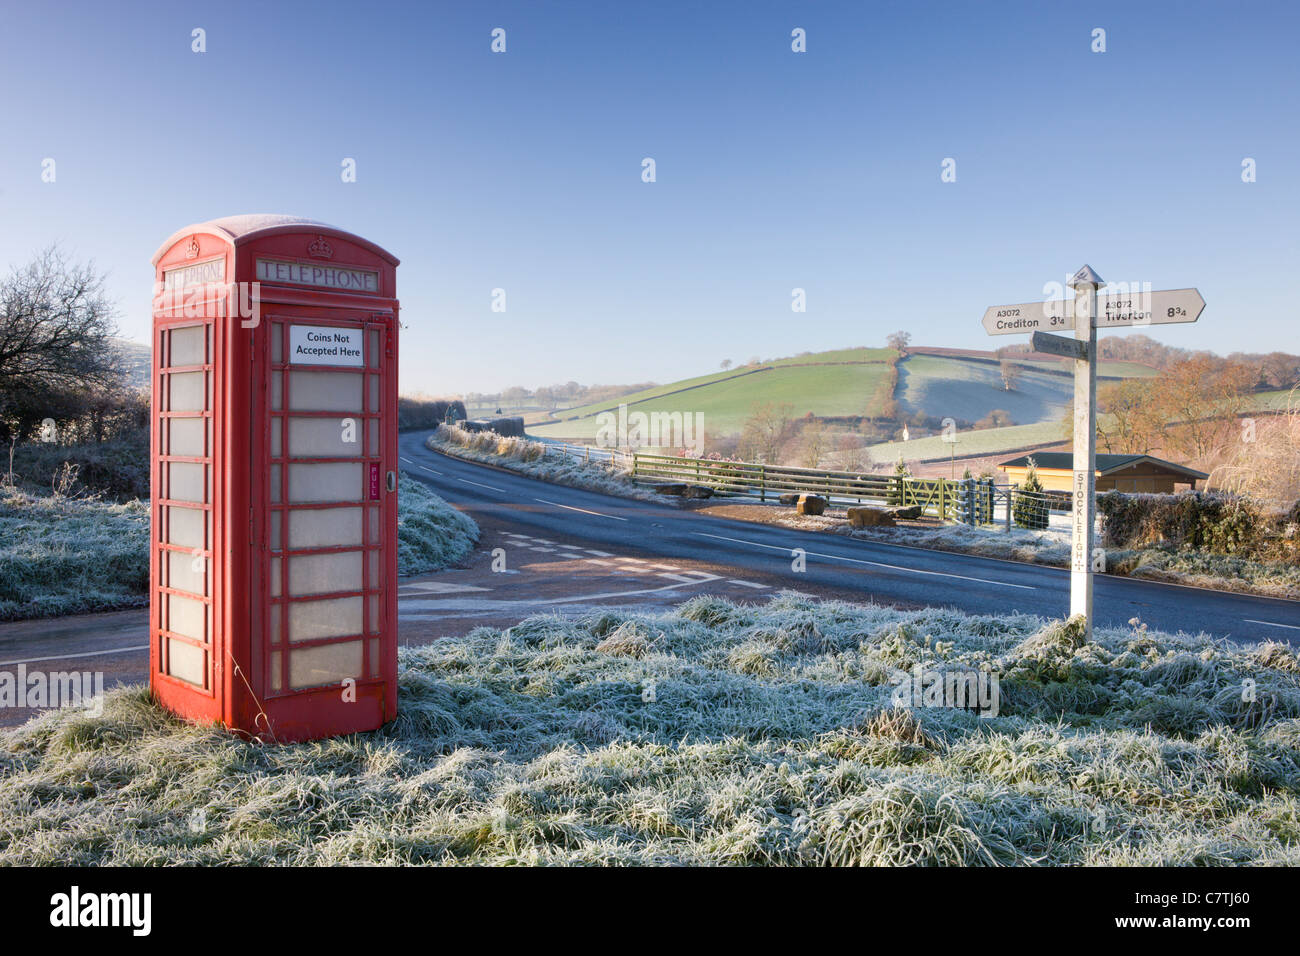 Traditional English telephone box in the frost at Stockleigh Pomeroy, Devon, England. December 2008 - Stock Image